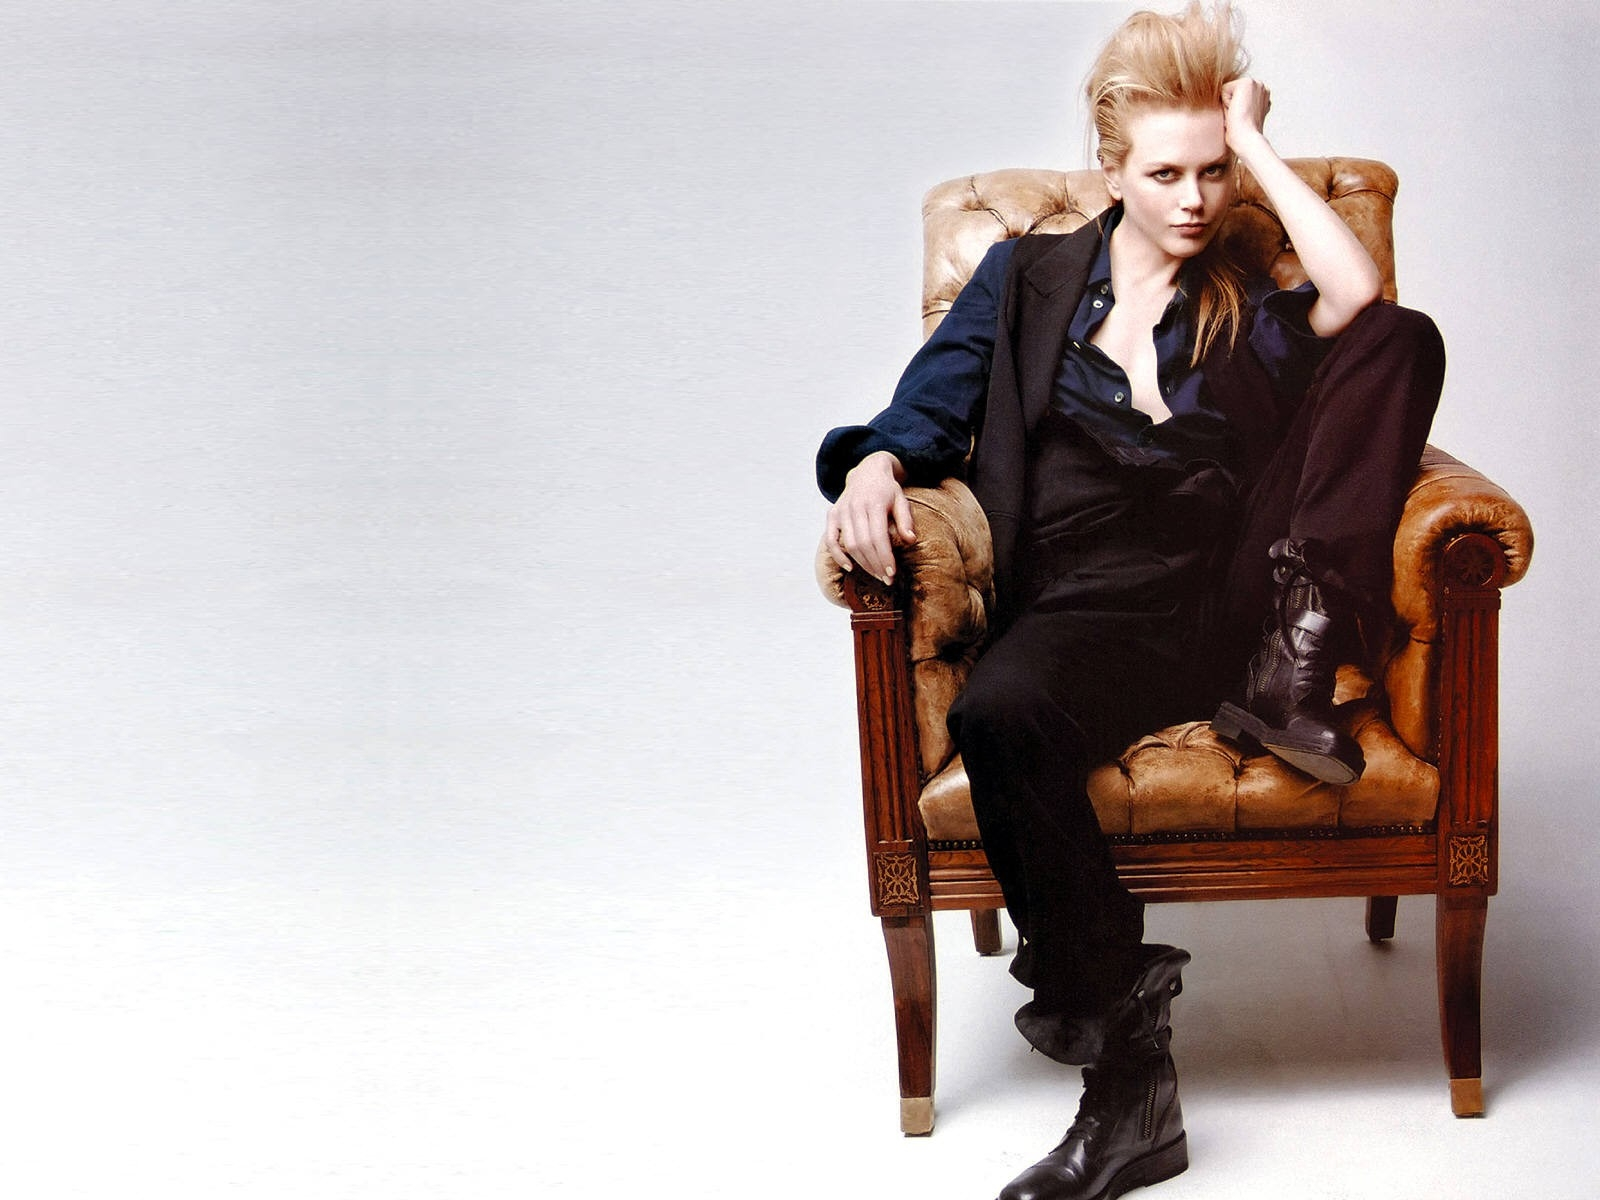 Wallpaper di Nicole Kidman in versione androgino-fashion